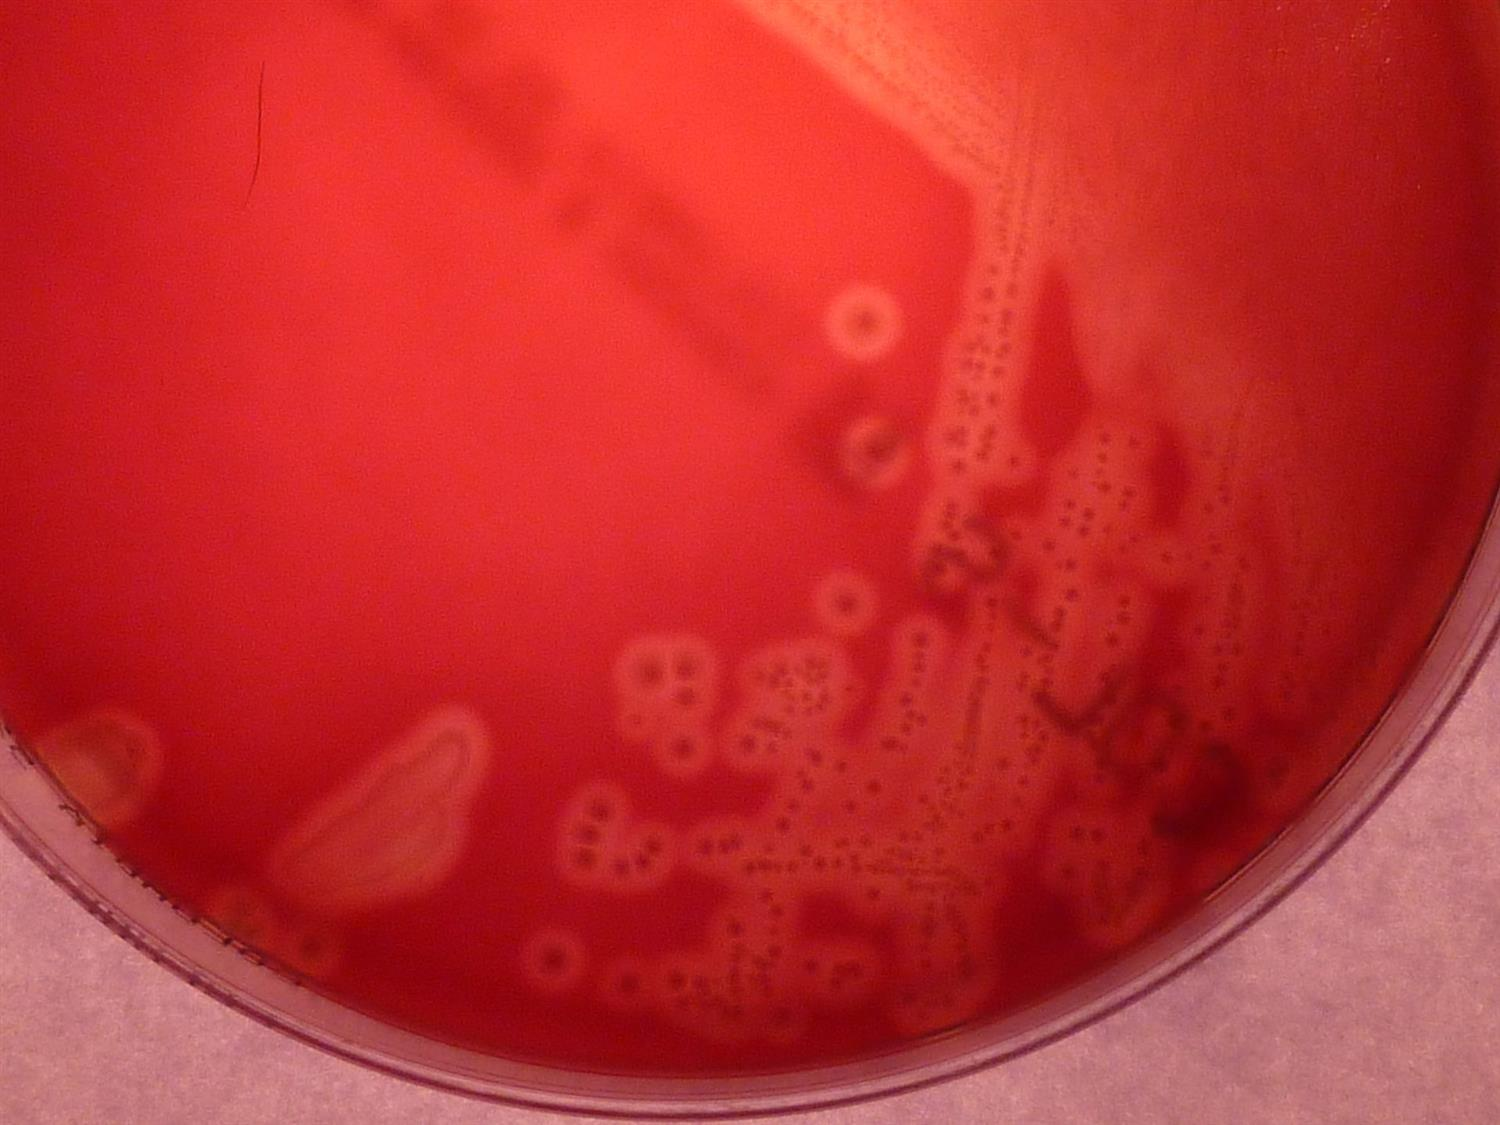 https://upload.medbullets.com/topic/104031/images/streptococcus_agalactiae_on_blood_agar.jpg